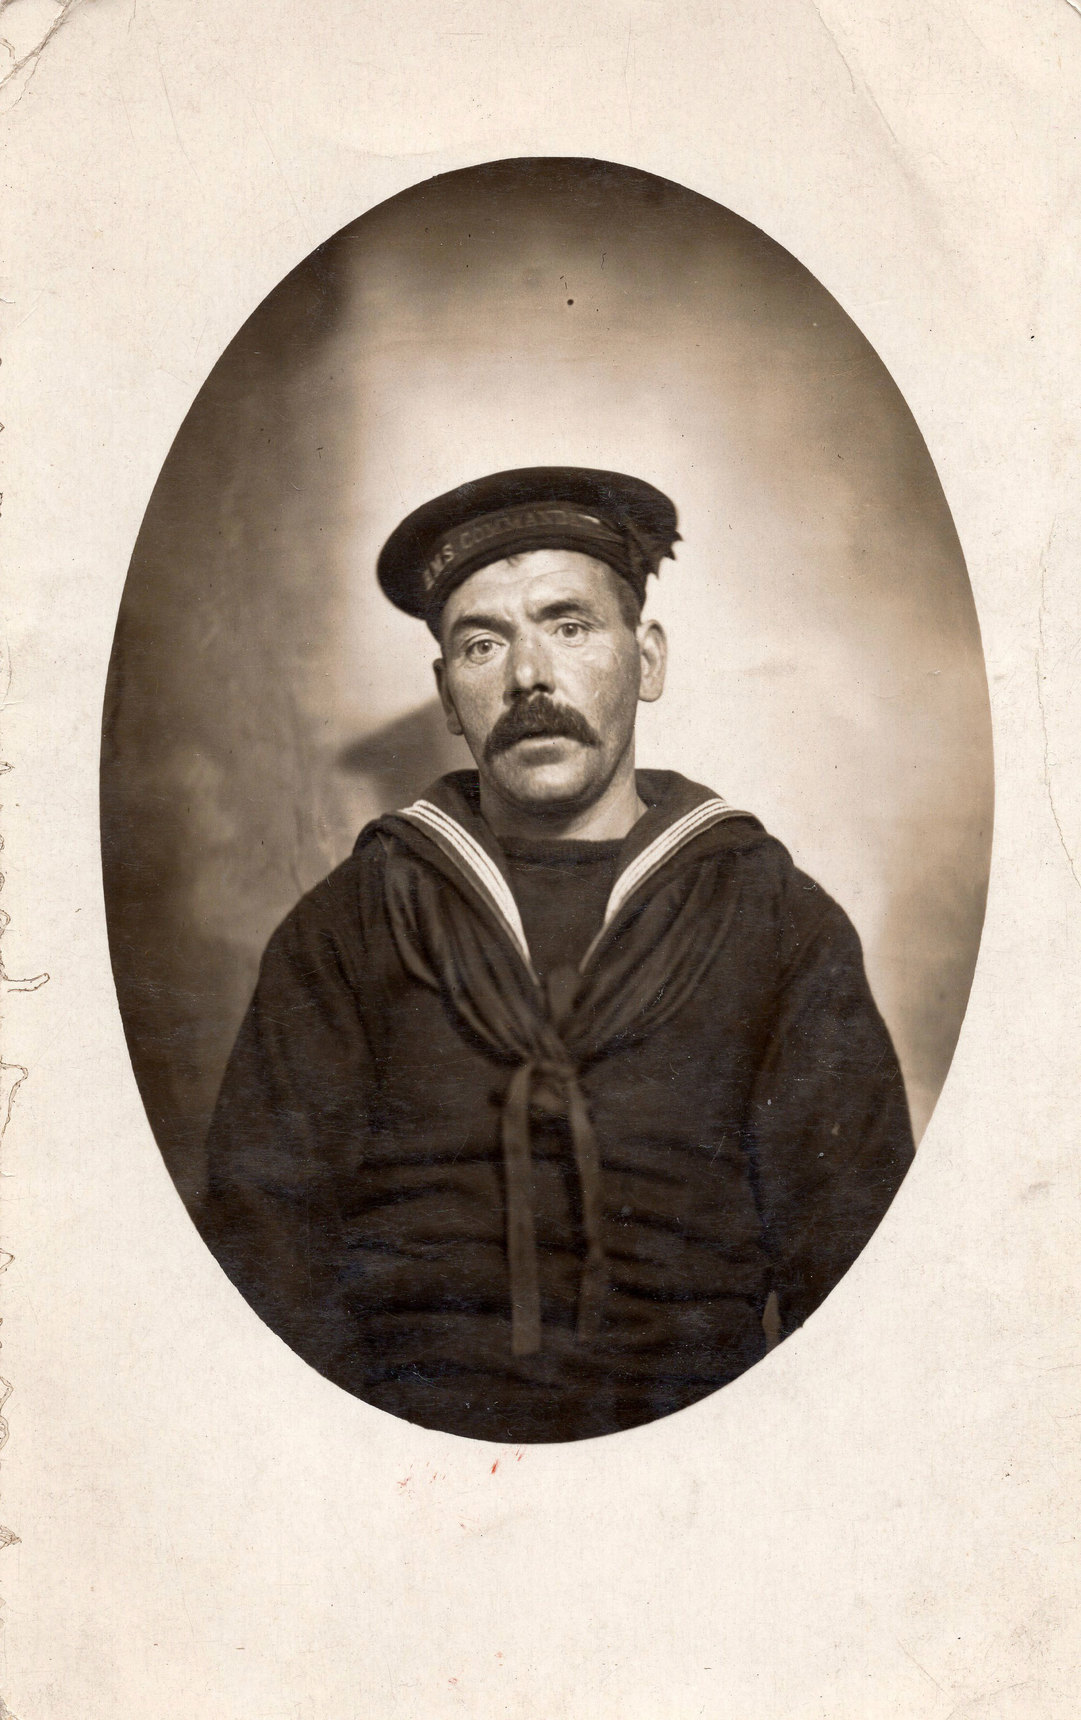 Studio Portrait Sailor Of Royal Navy c.1915